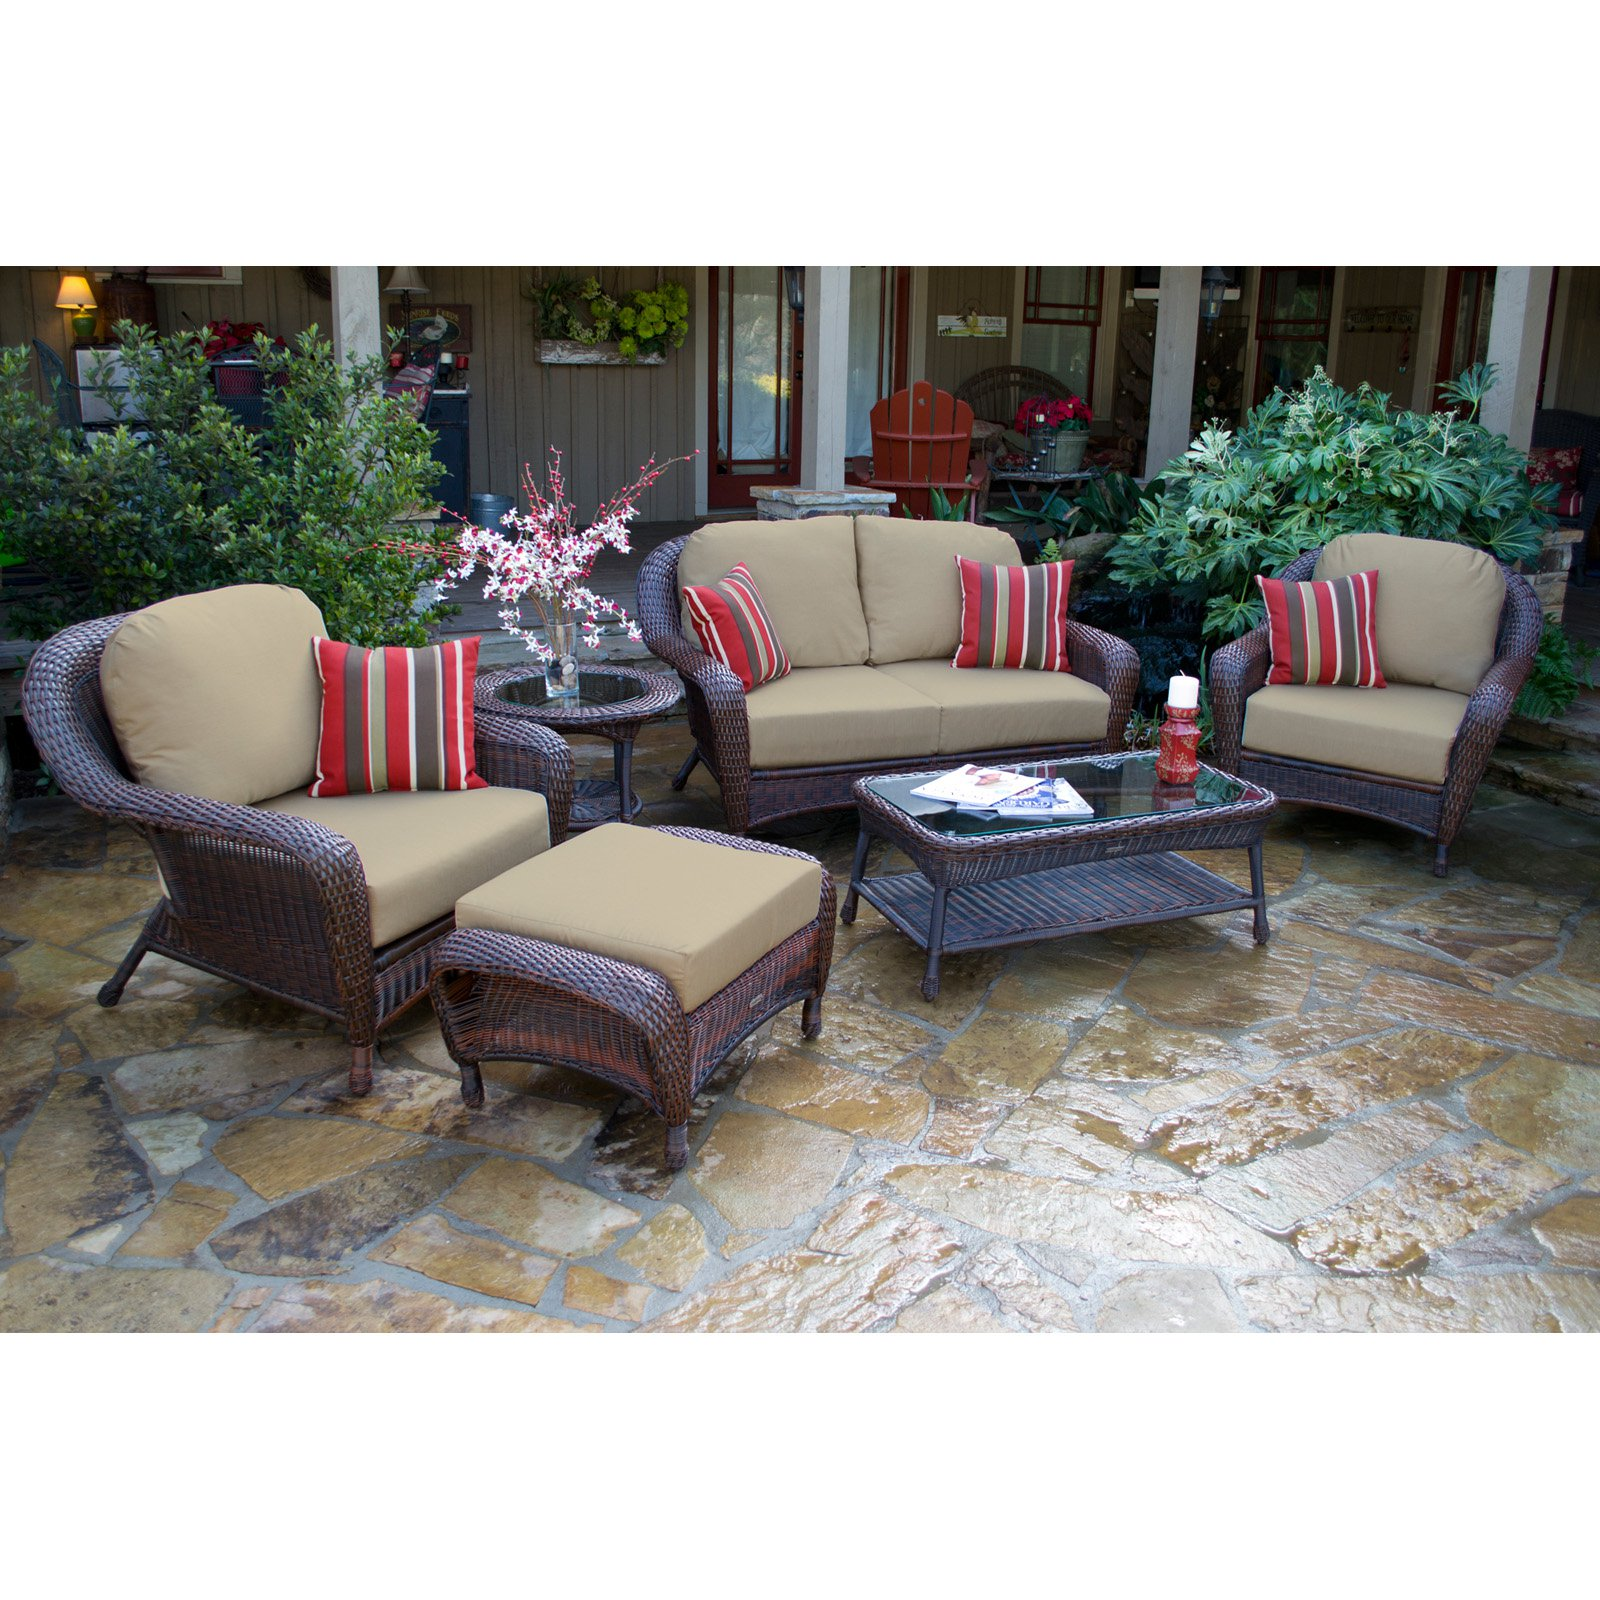 Tortuga Sea Pines 6 Piece Deep Seating Conversation Set with Loveseat